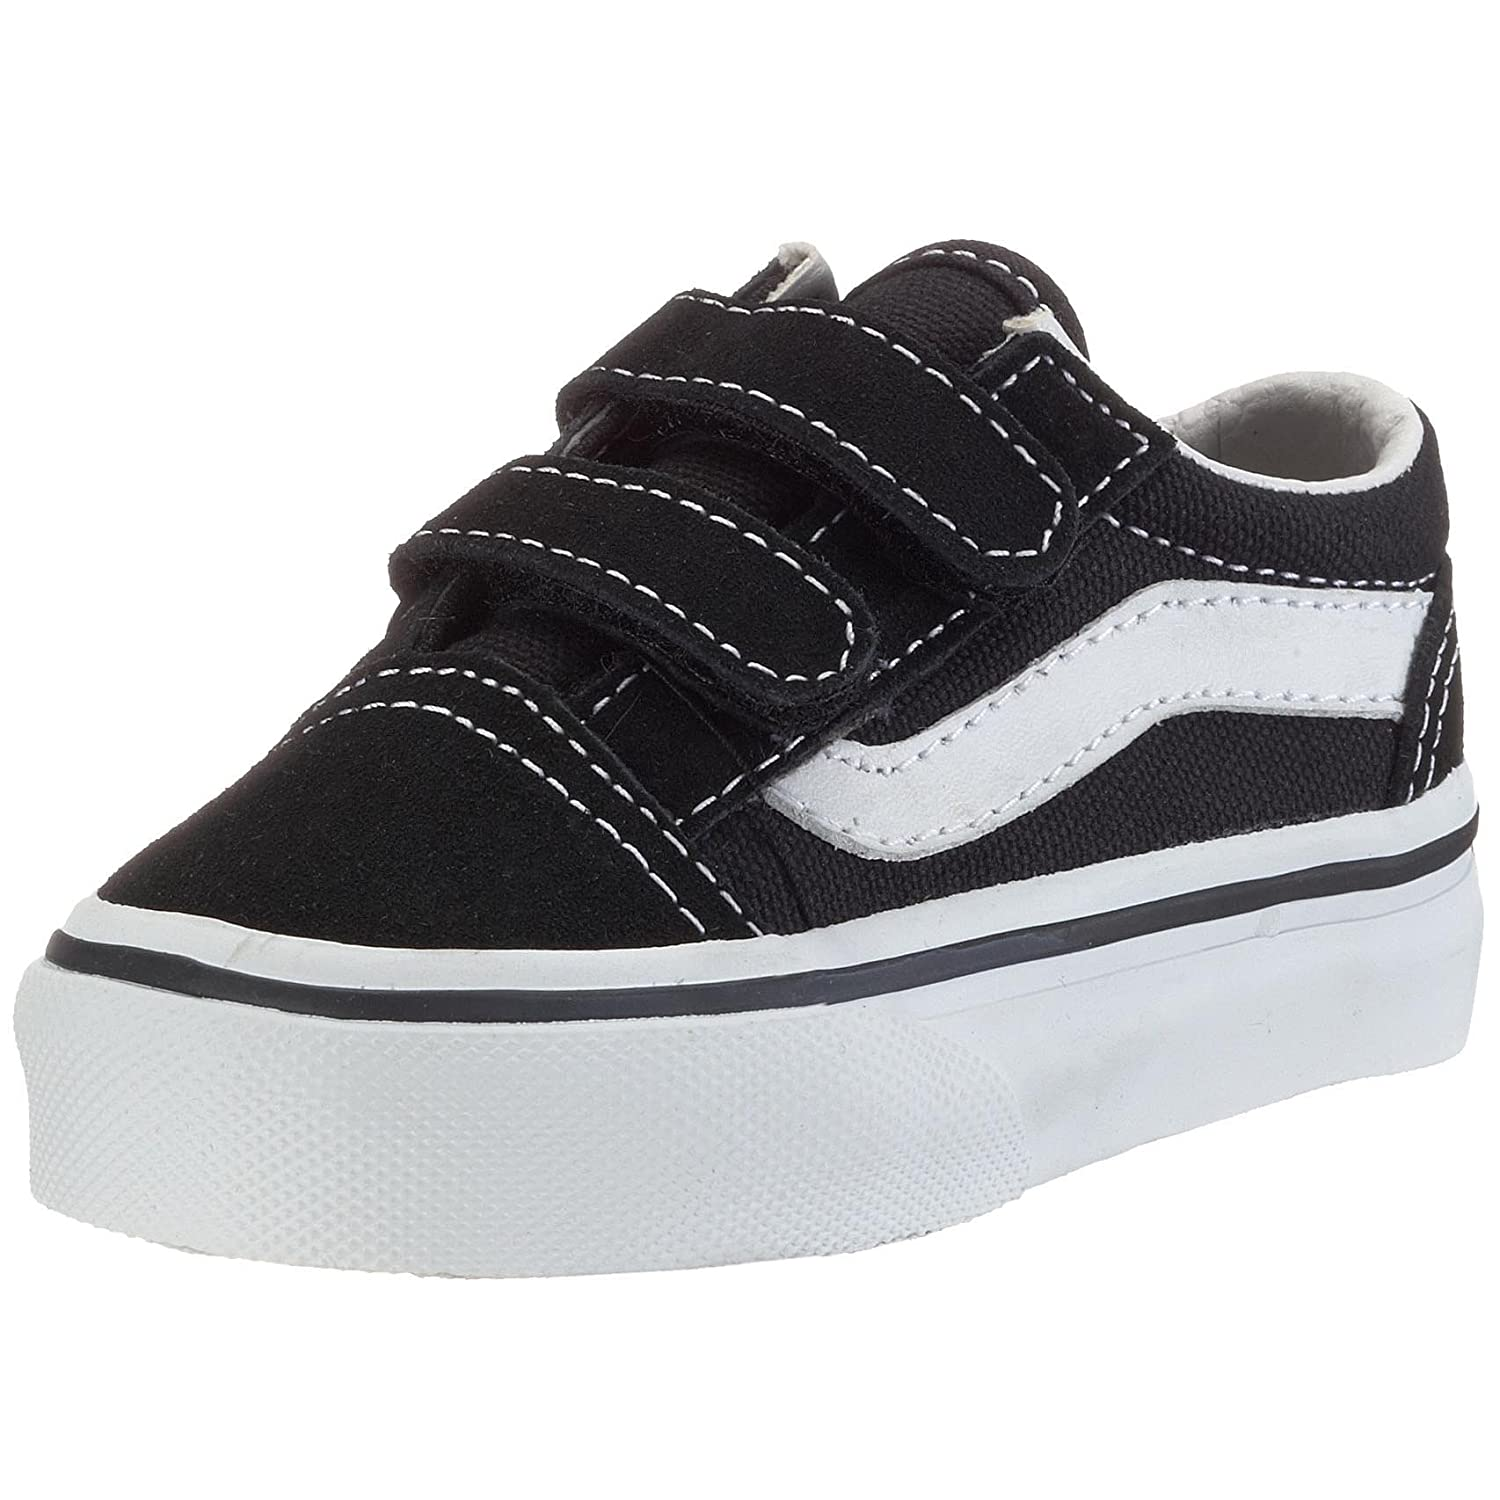 国産品 SPORTS SHOE BLACK VANS 20.0 OLD SKOOL D3YBLK cm B002HWRTMQ BLACK 20.0 cm|ブラック ブラック 20.0 cm, メガシューズ:fad95bd0 --- svecha37.ru